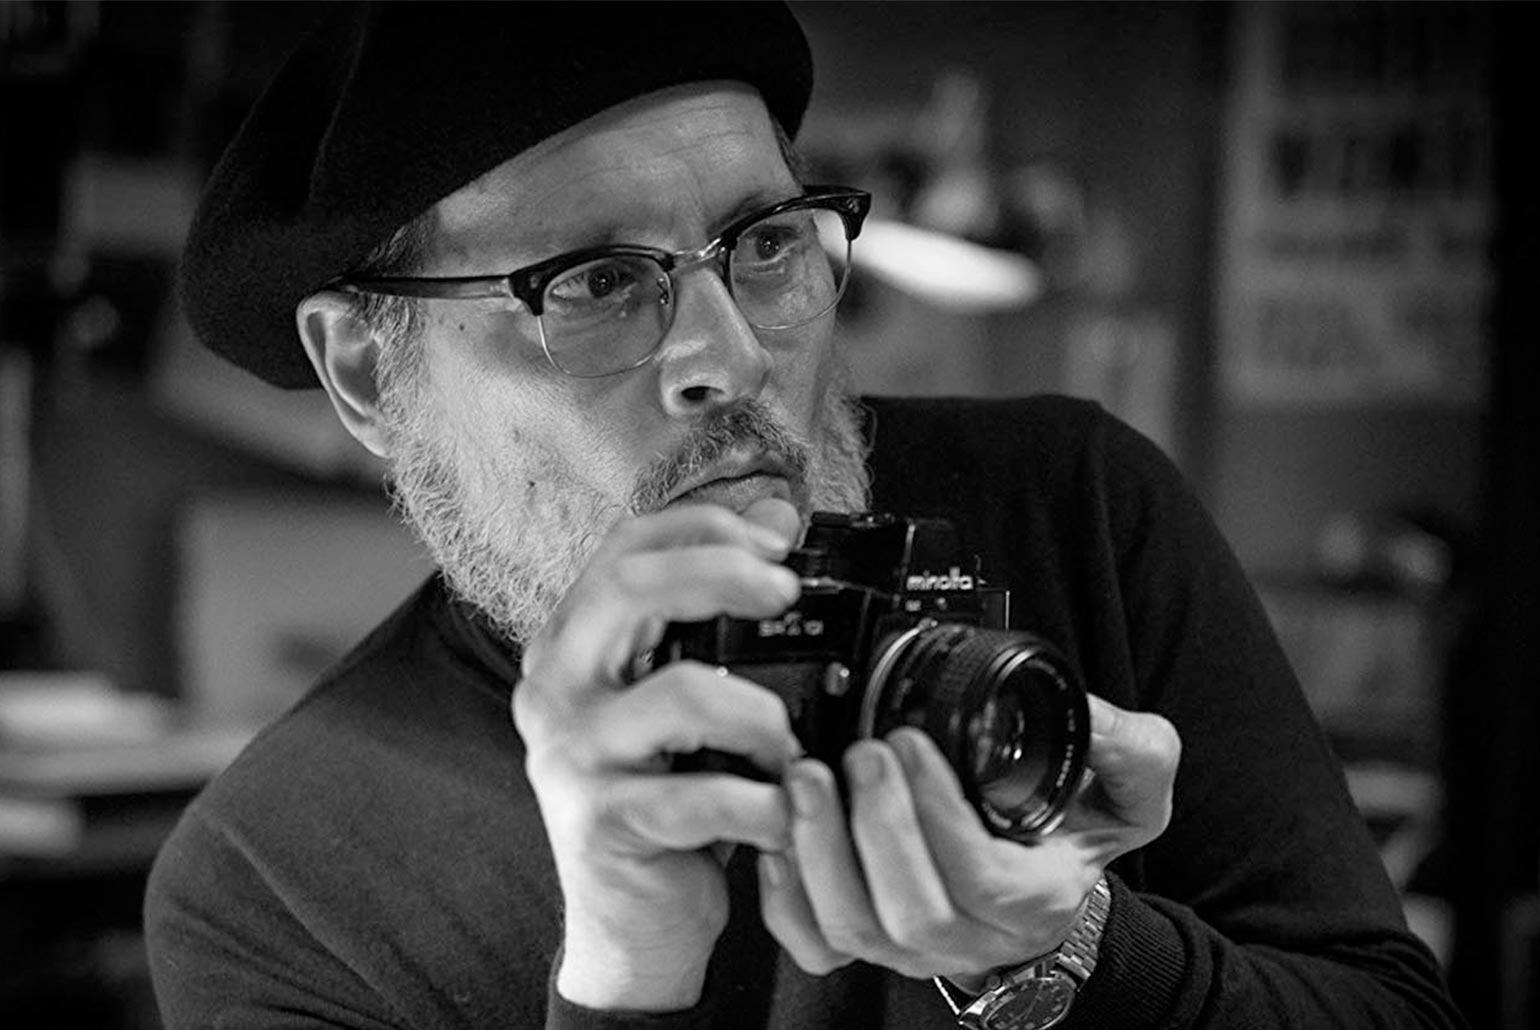 Johnny Depp joue le rôle du photographe W Eugene Smith dans Minamata